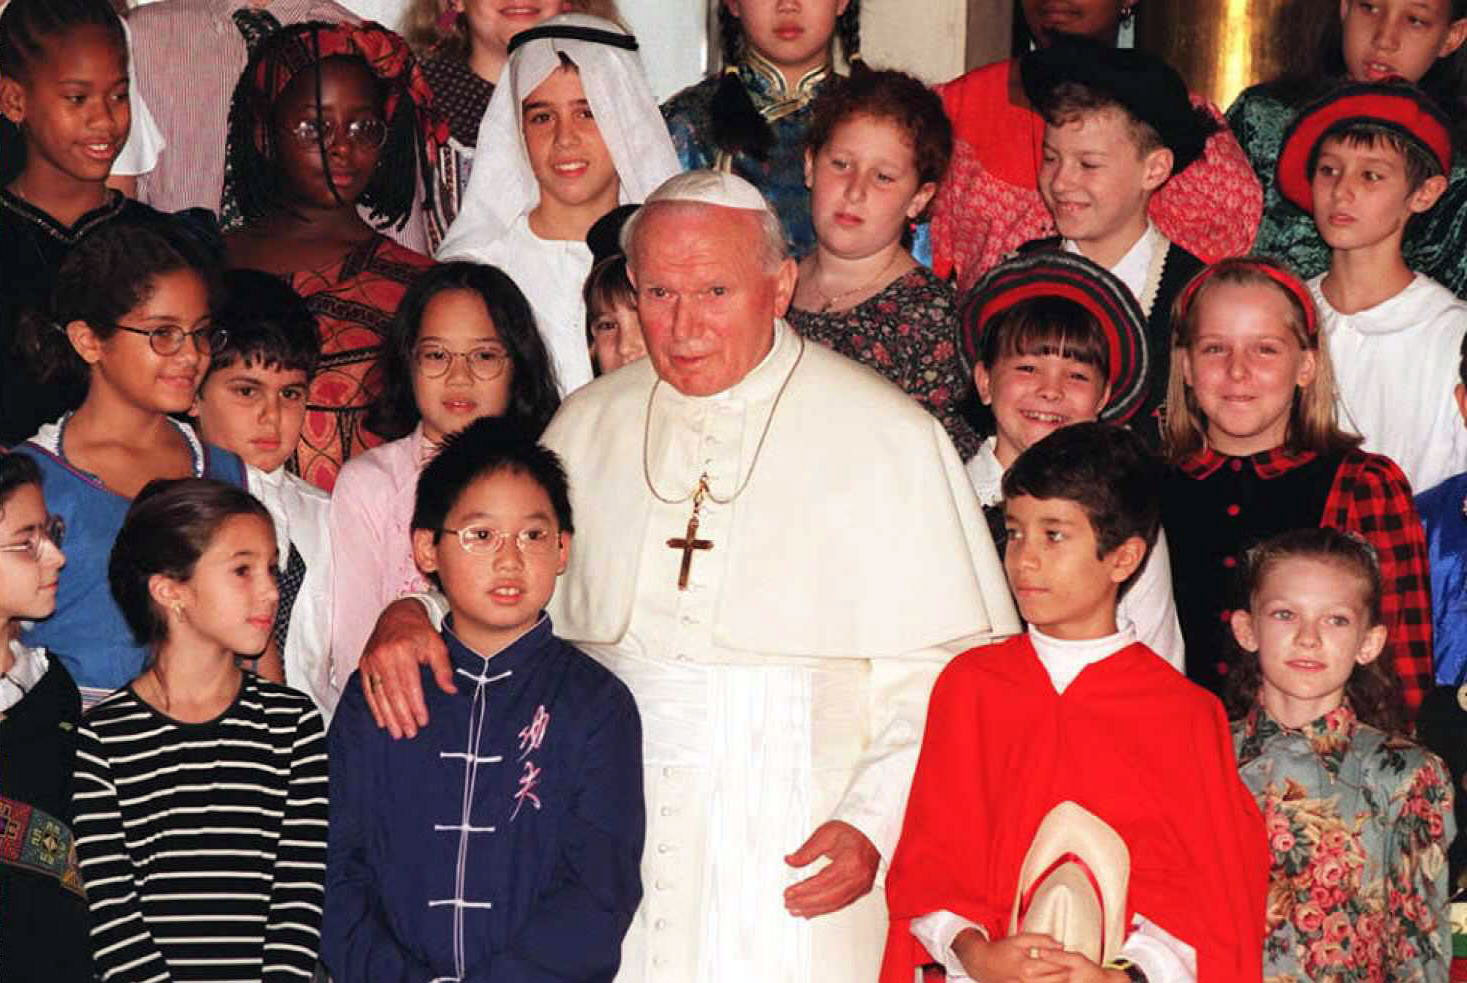 Pope John Paul II  with members of the United Nations International School choir during his visit to the UN in New York, Oct. 5, 1995.